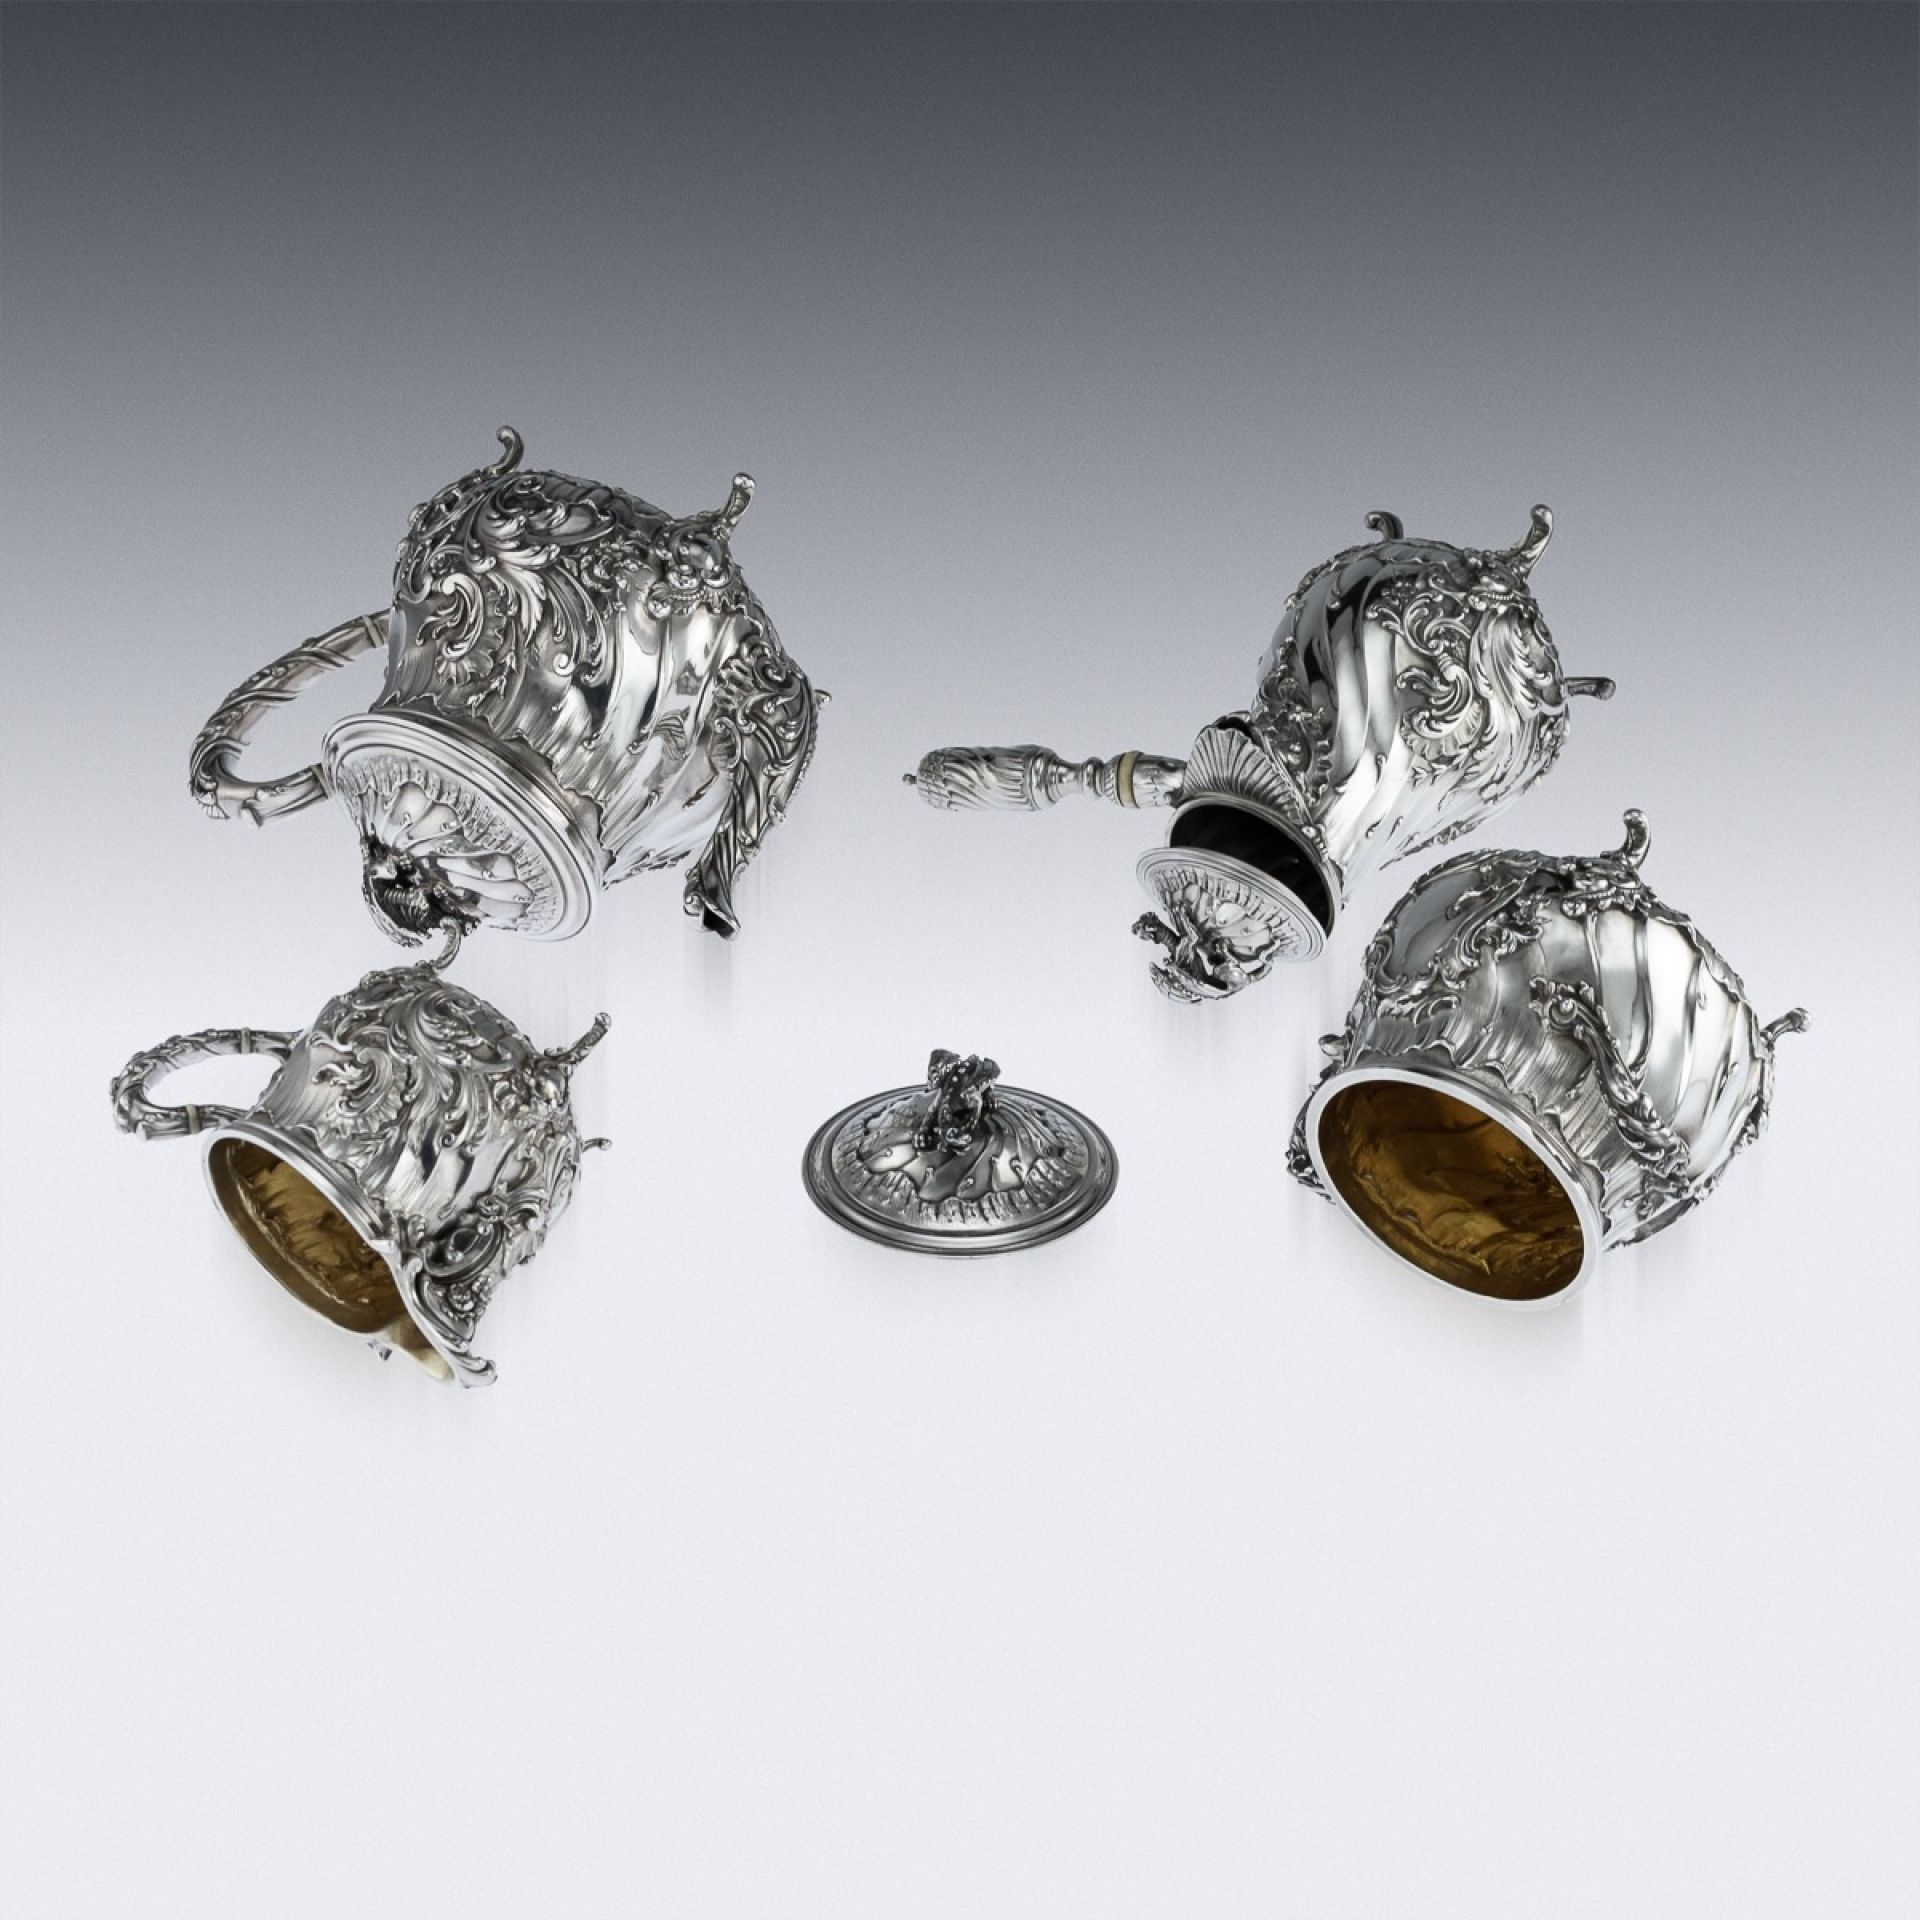 ANTIQUE 19thC FRENCH SOLID SILVER FOUR PIECE TEA & COFFEE SERVICE c.1886